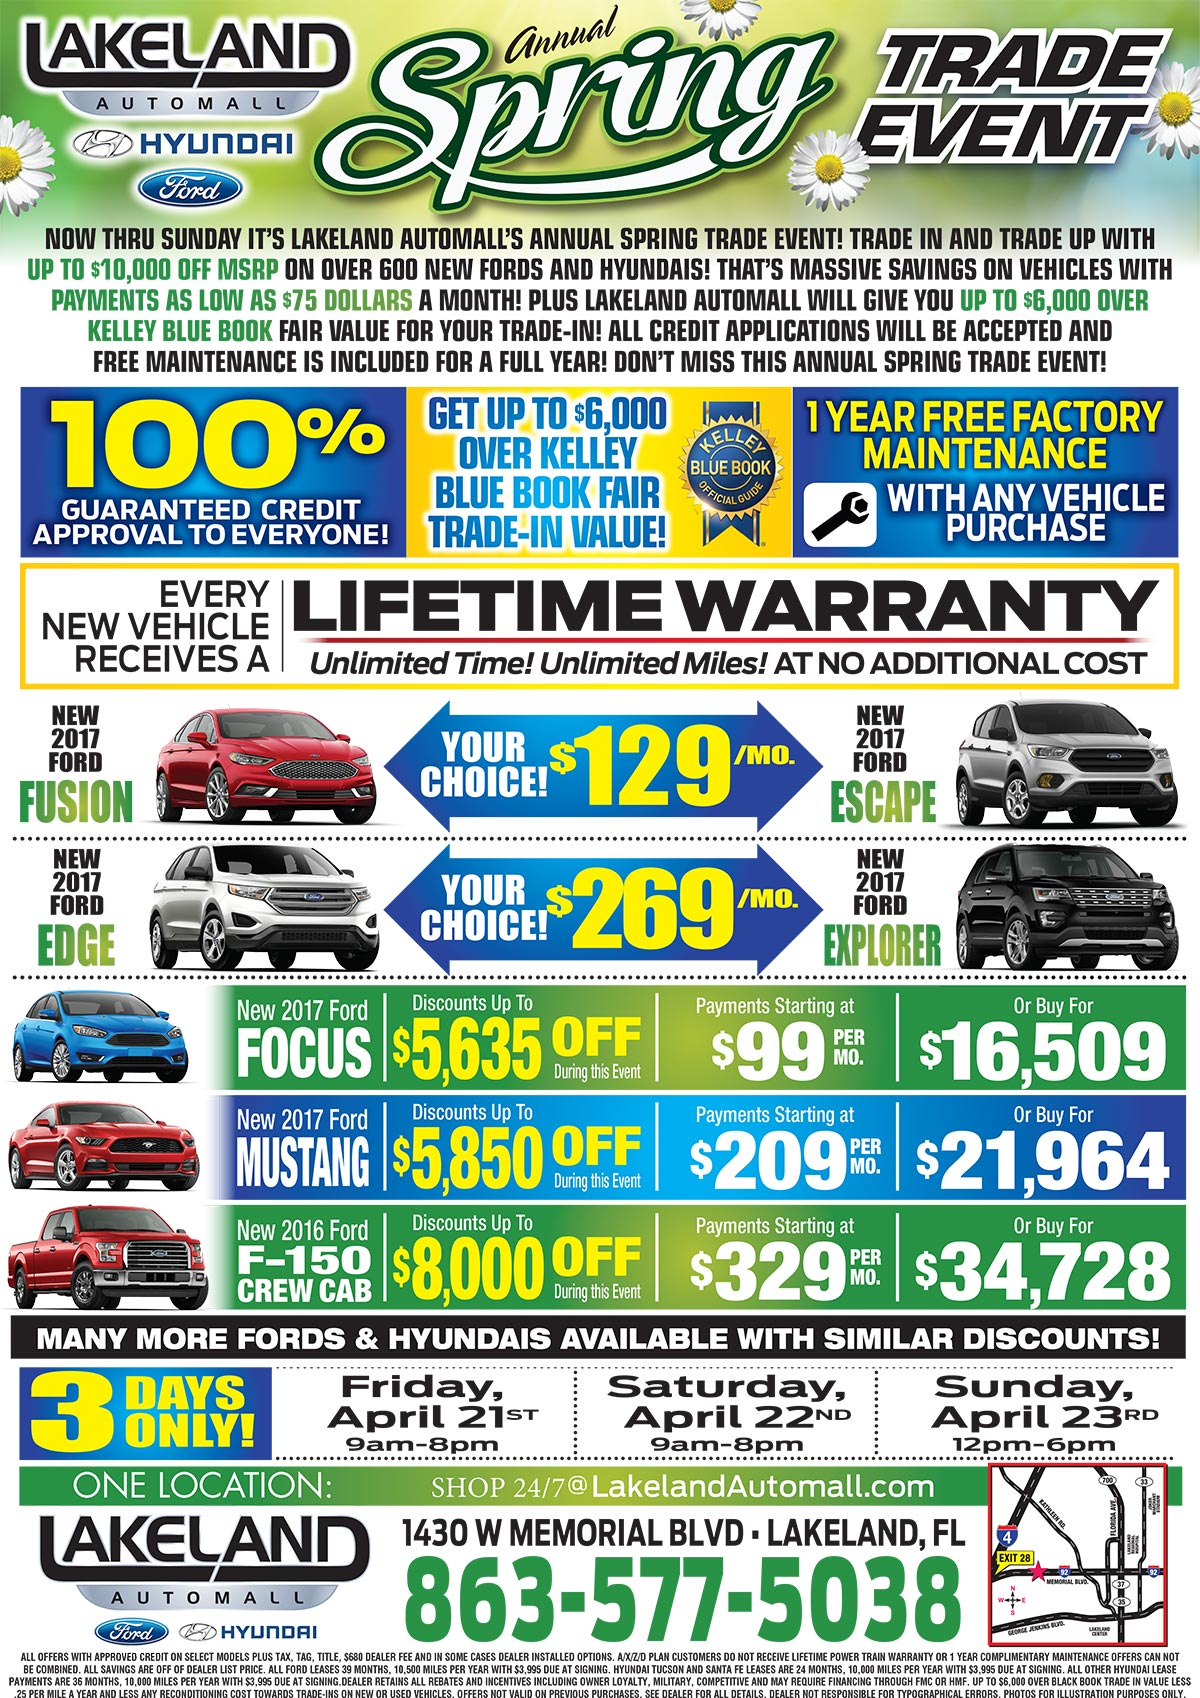 Search Lakeladn Ford Inventory